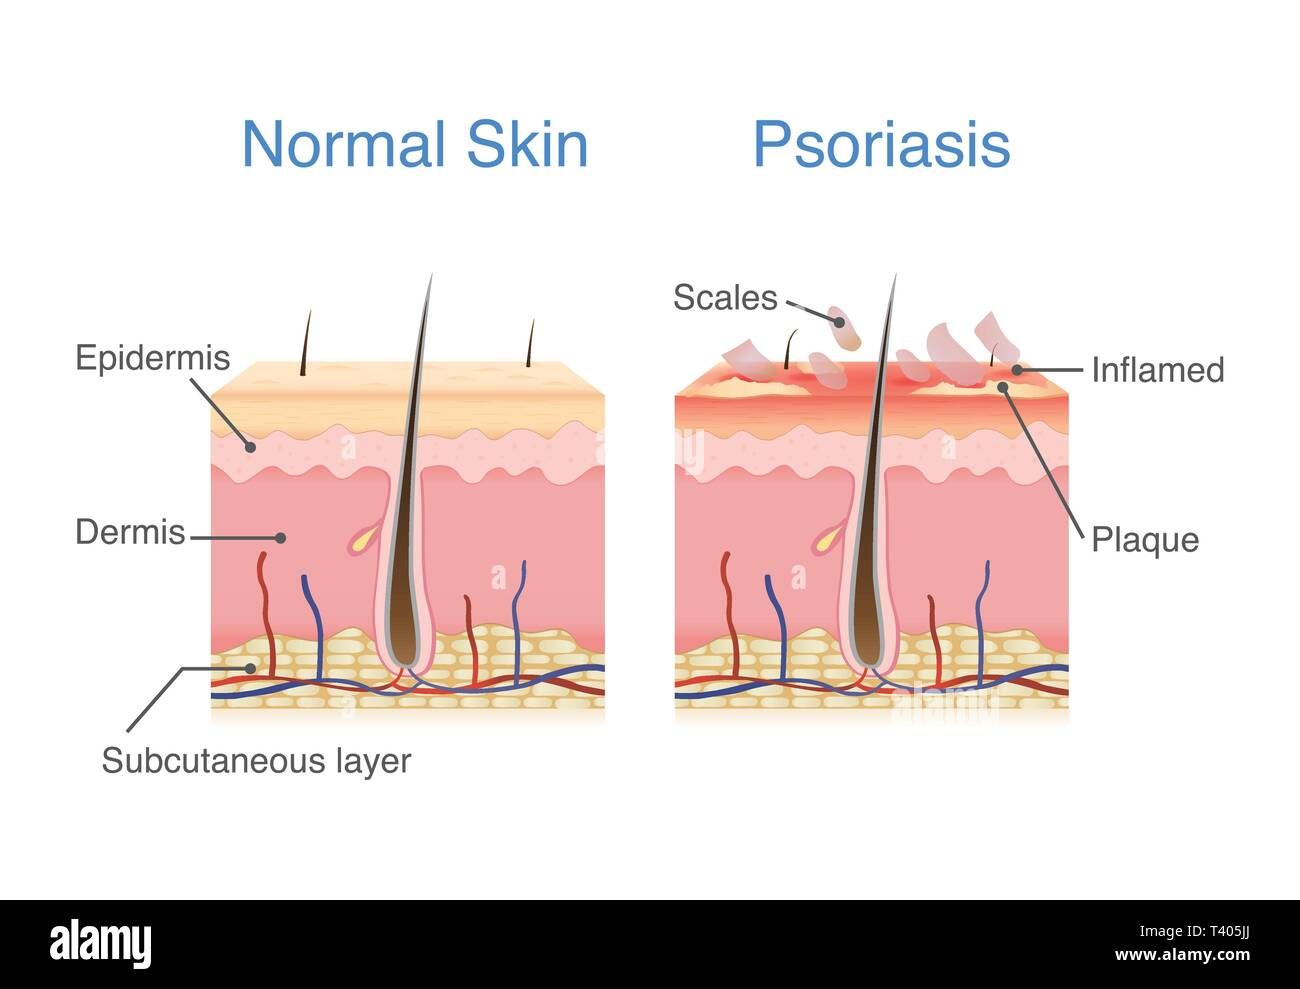 Normal skin layer and skin when plaque psoriasis signs and symptoms appear. - Stock Image